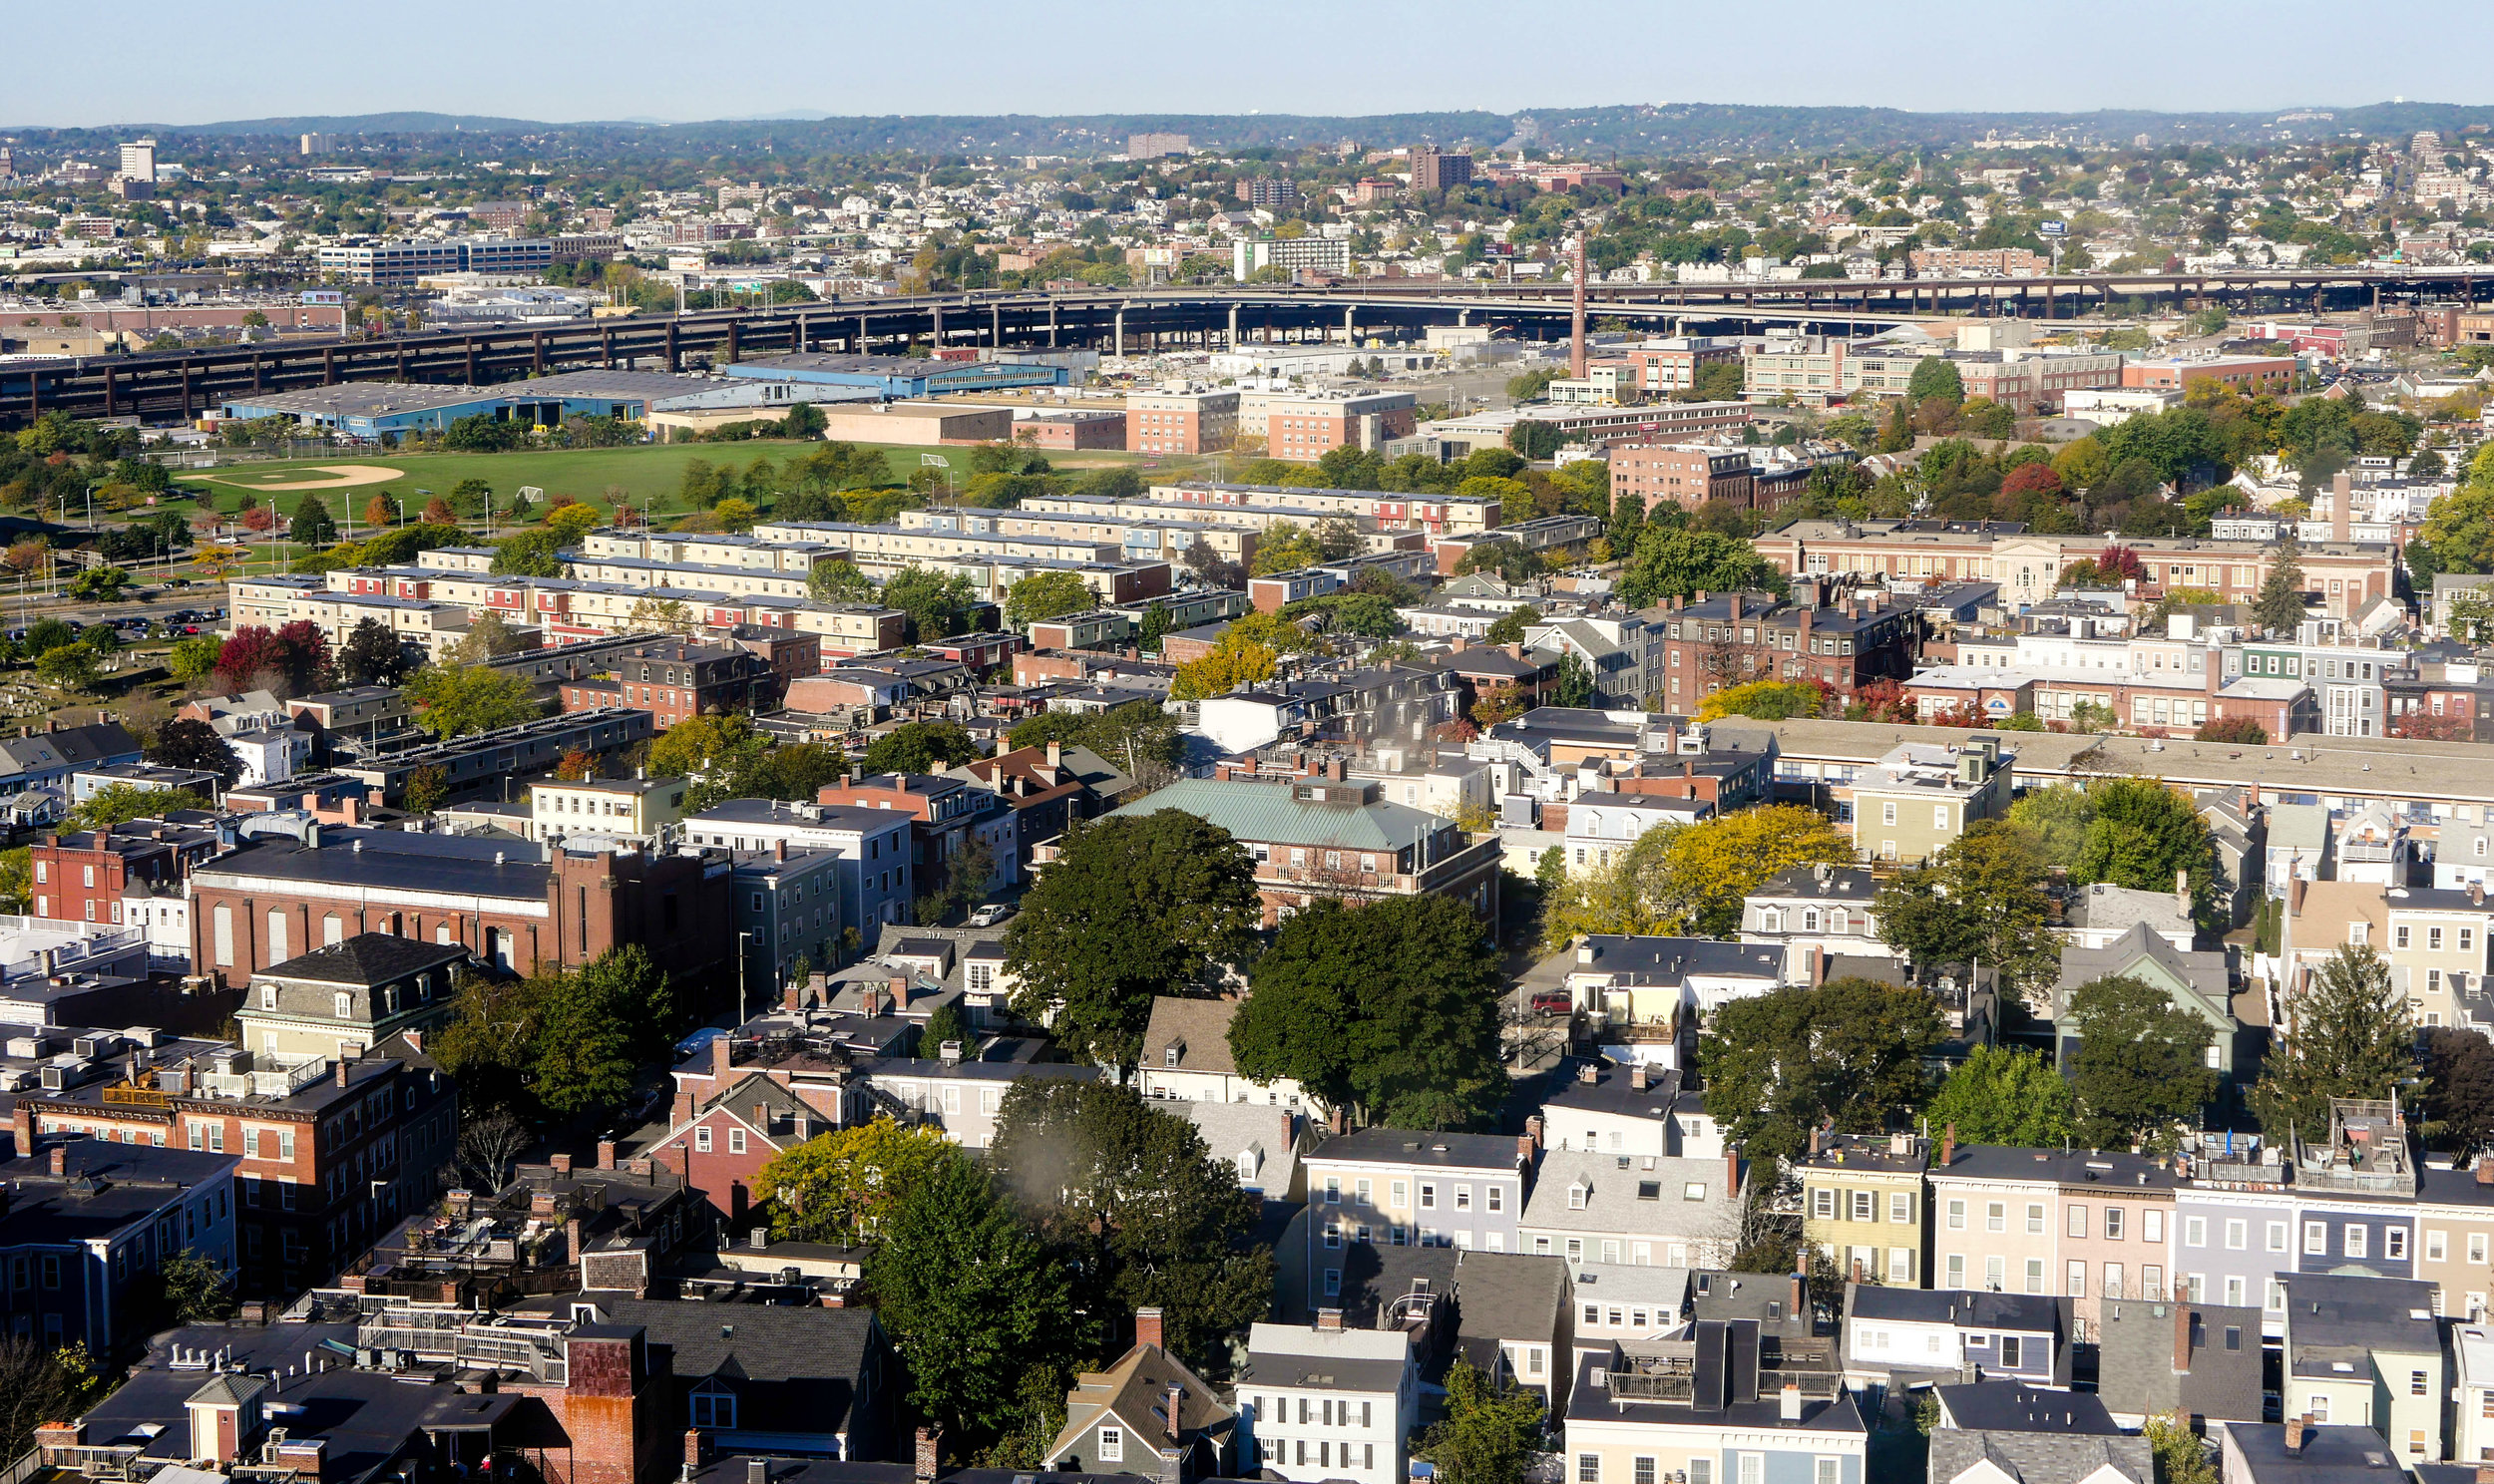 The view of Boston from the Bunker Hill Monument in Charlestown.